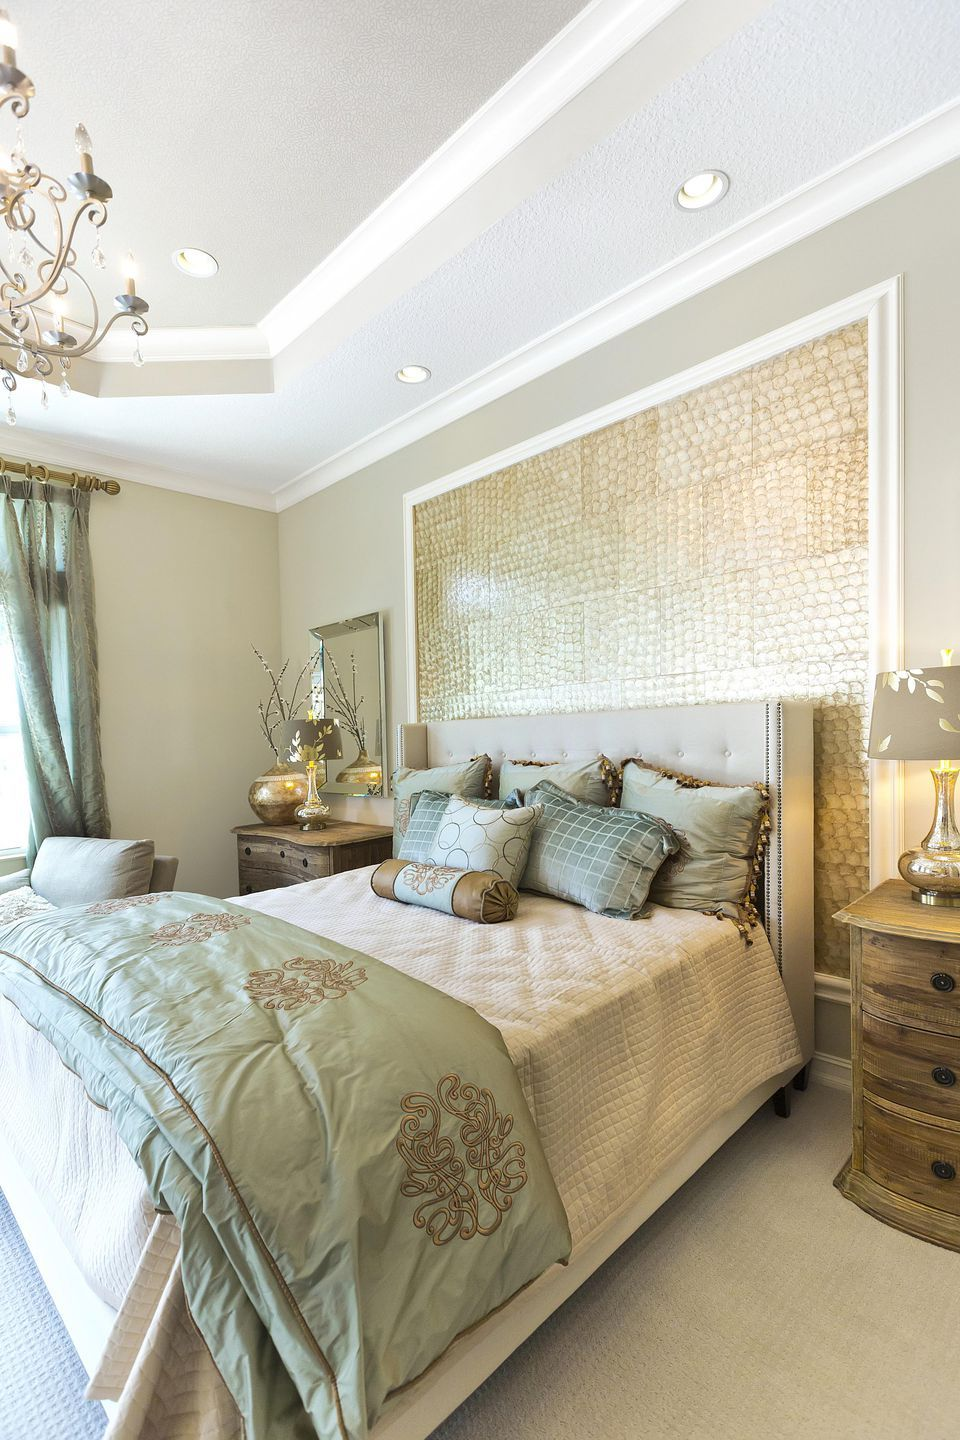 For a PicturePerfect Bedroom, Learn to Make Your Bed Like